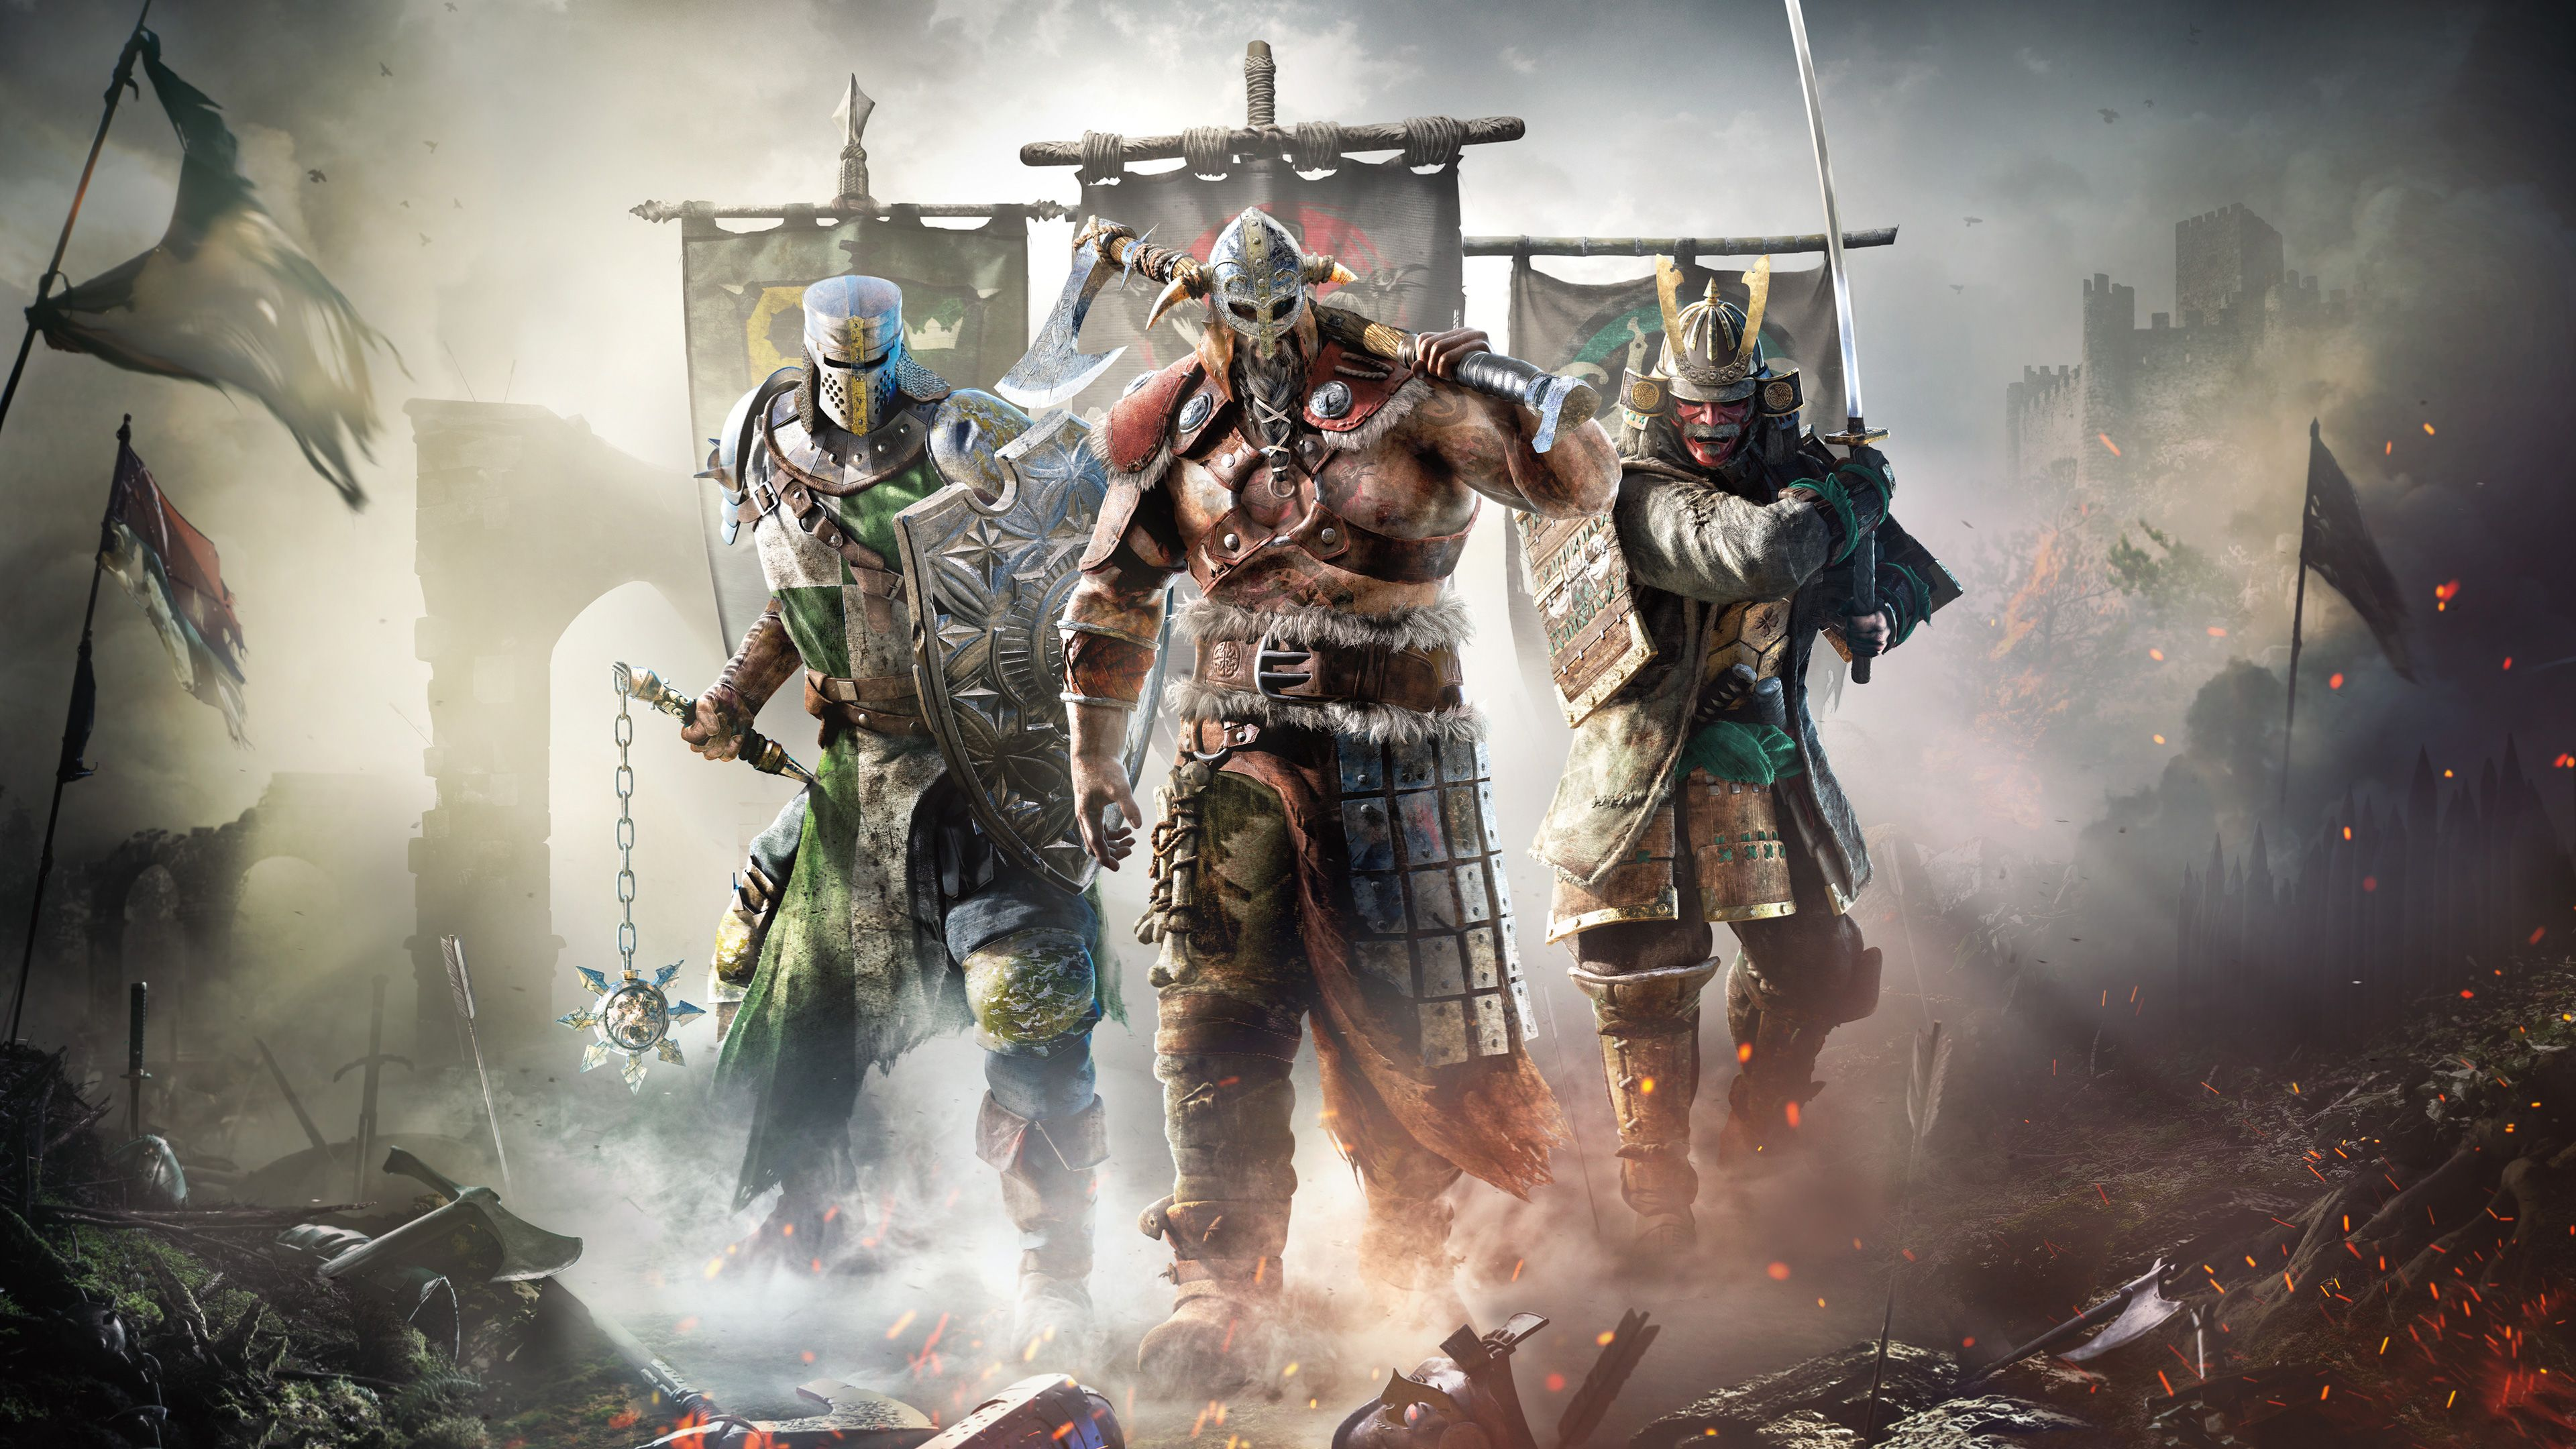 For Honor Video Game New 4k Xbox Games Wallpapers Ps Games Wallpapers Pc Games Wallpapers Hd Wallpapers Game For Honor Gameplay Pc Games Wallpapers Ubisoft